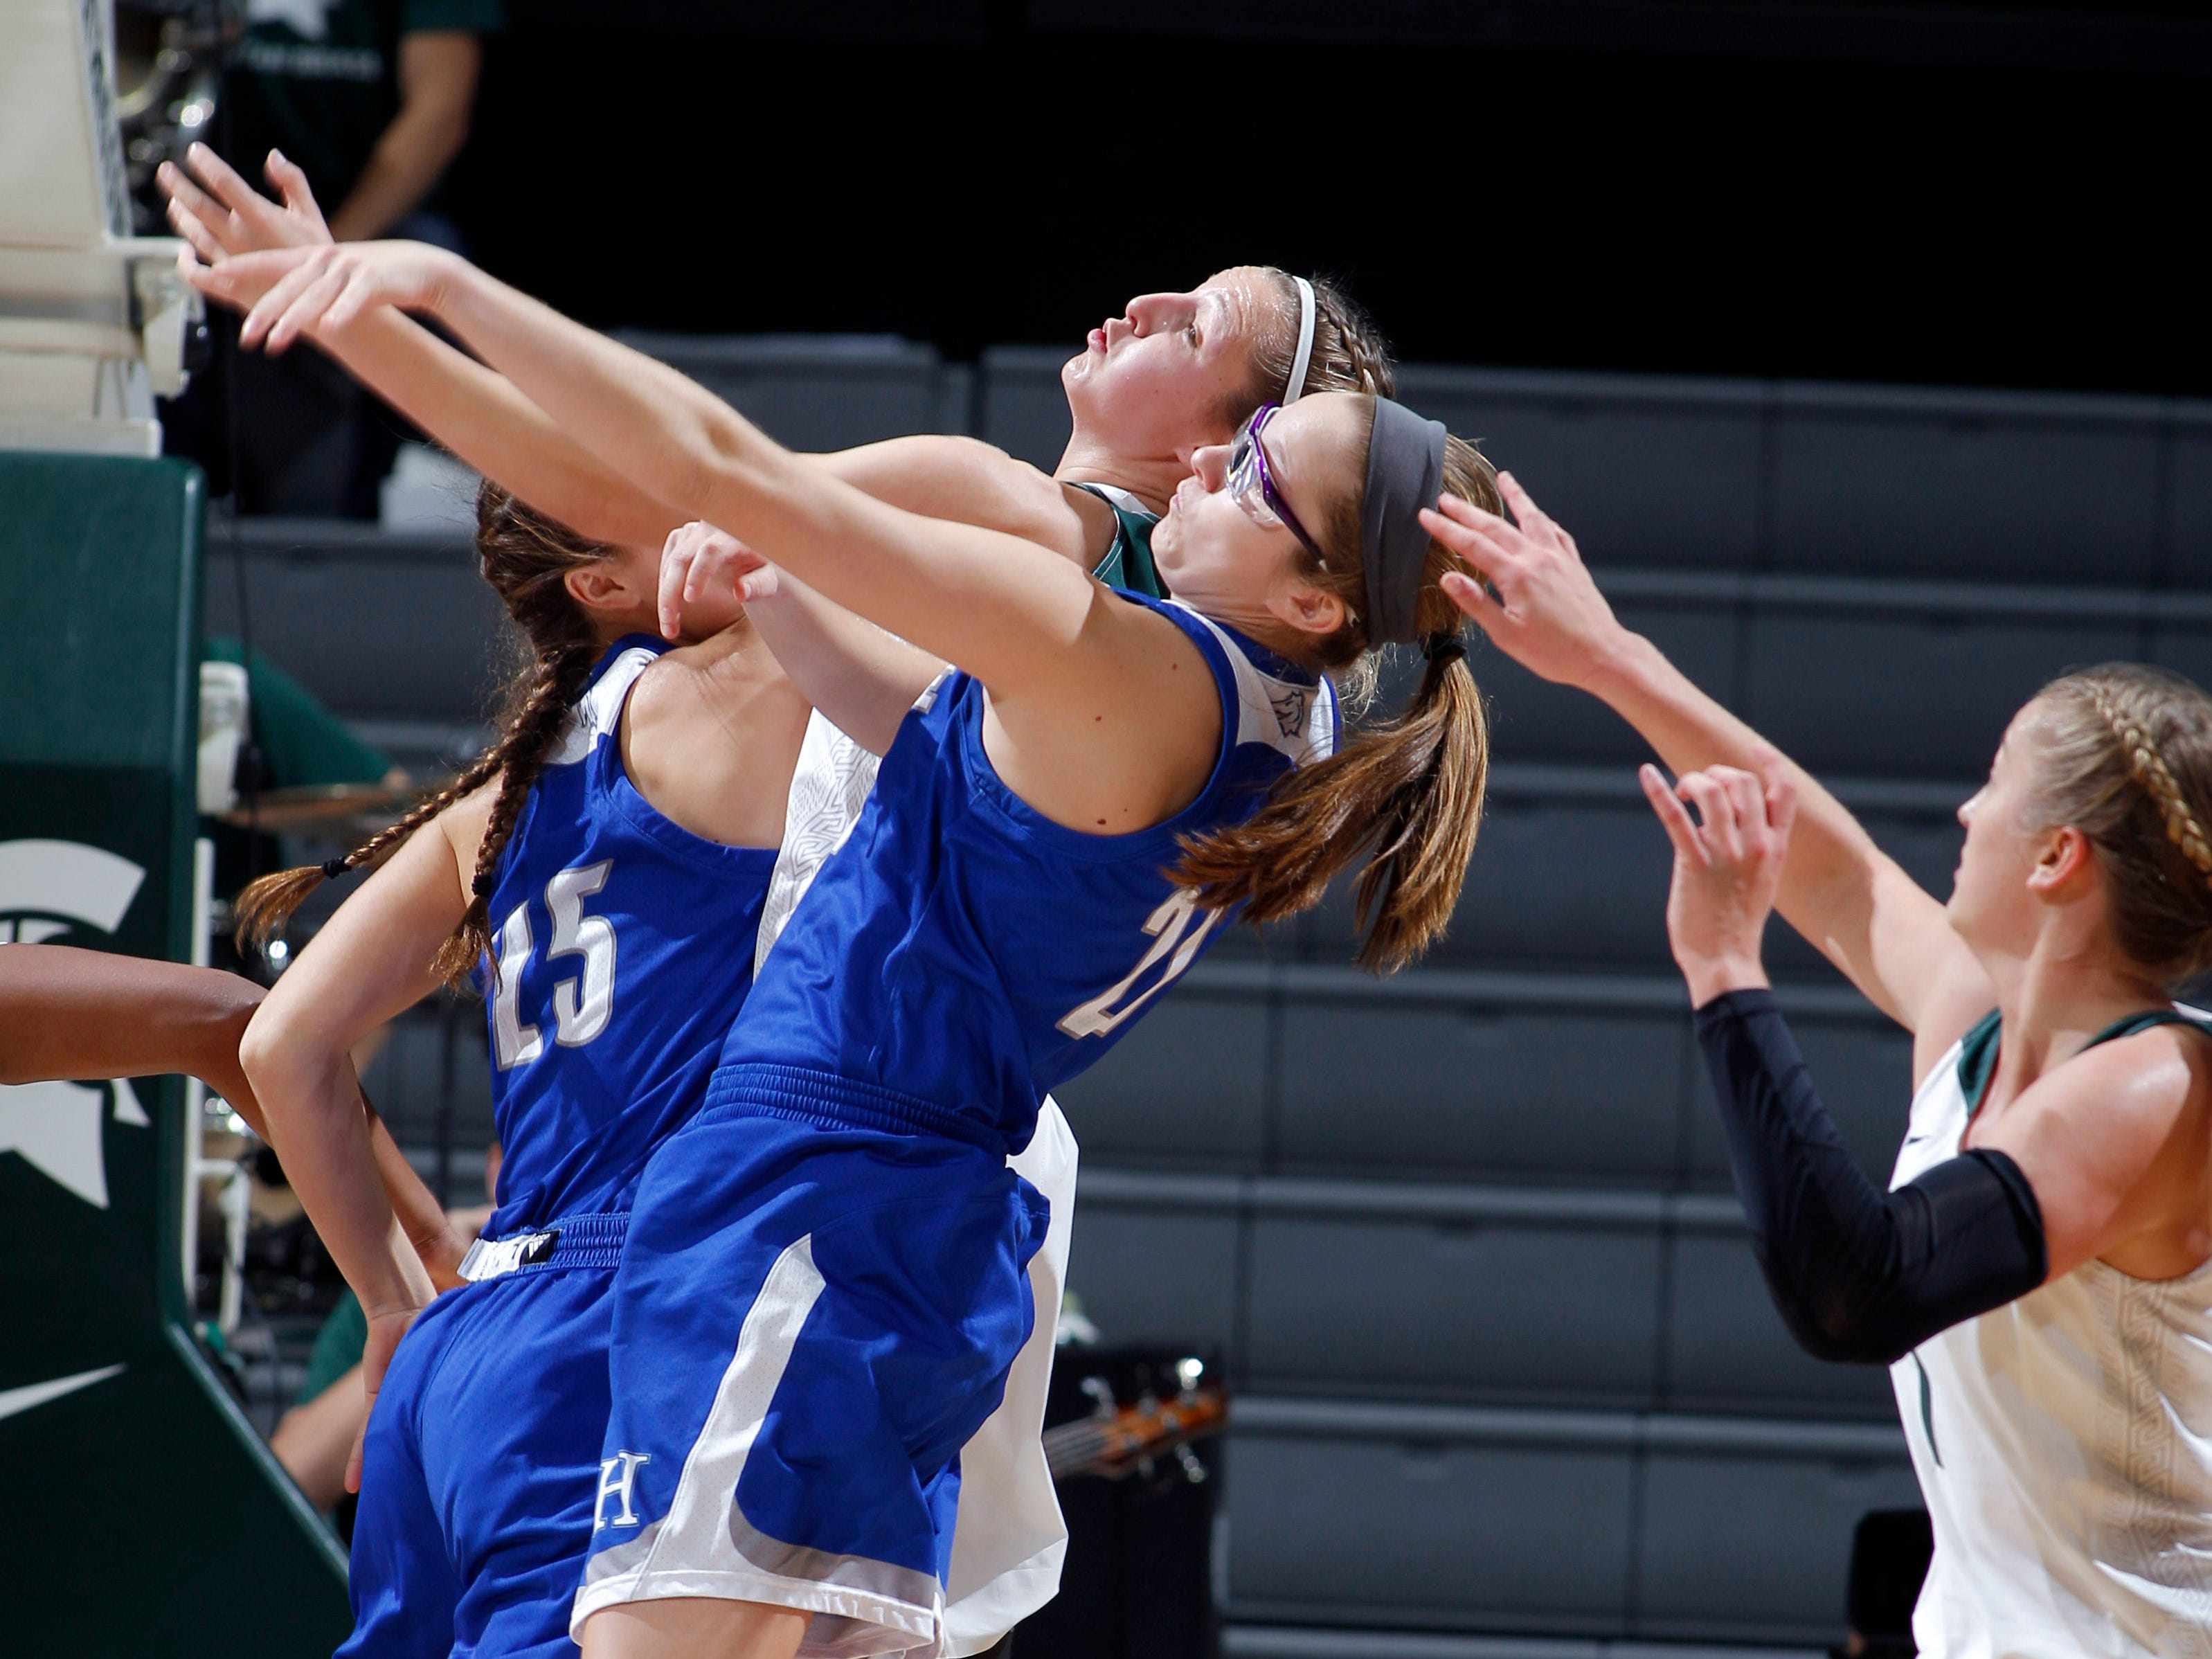 Michigan State's Claire Hendrick, center, and Tory Ozment, right, and Hillsdale's Sydney Anderson (25) and Lauren Daffenberg (21) battle for a rebound, Thursday, Nov. 1, 2018, in East Lansing, Mich.